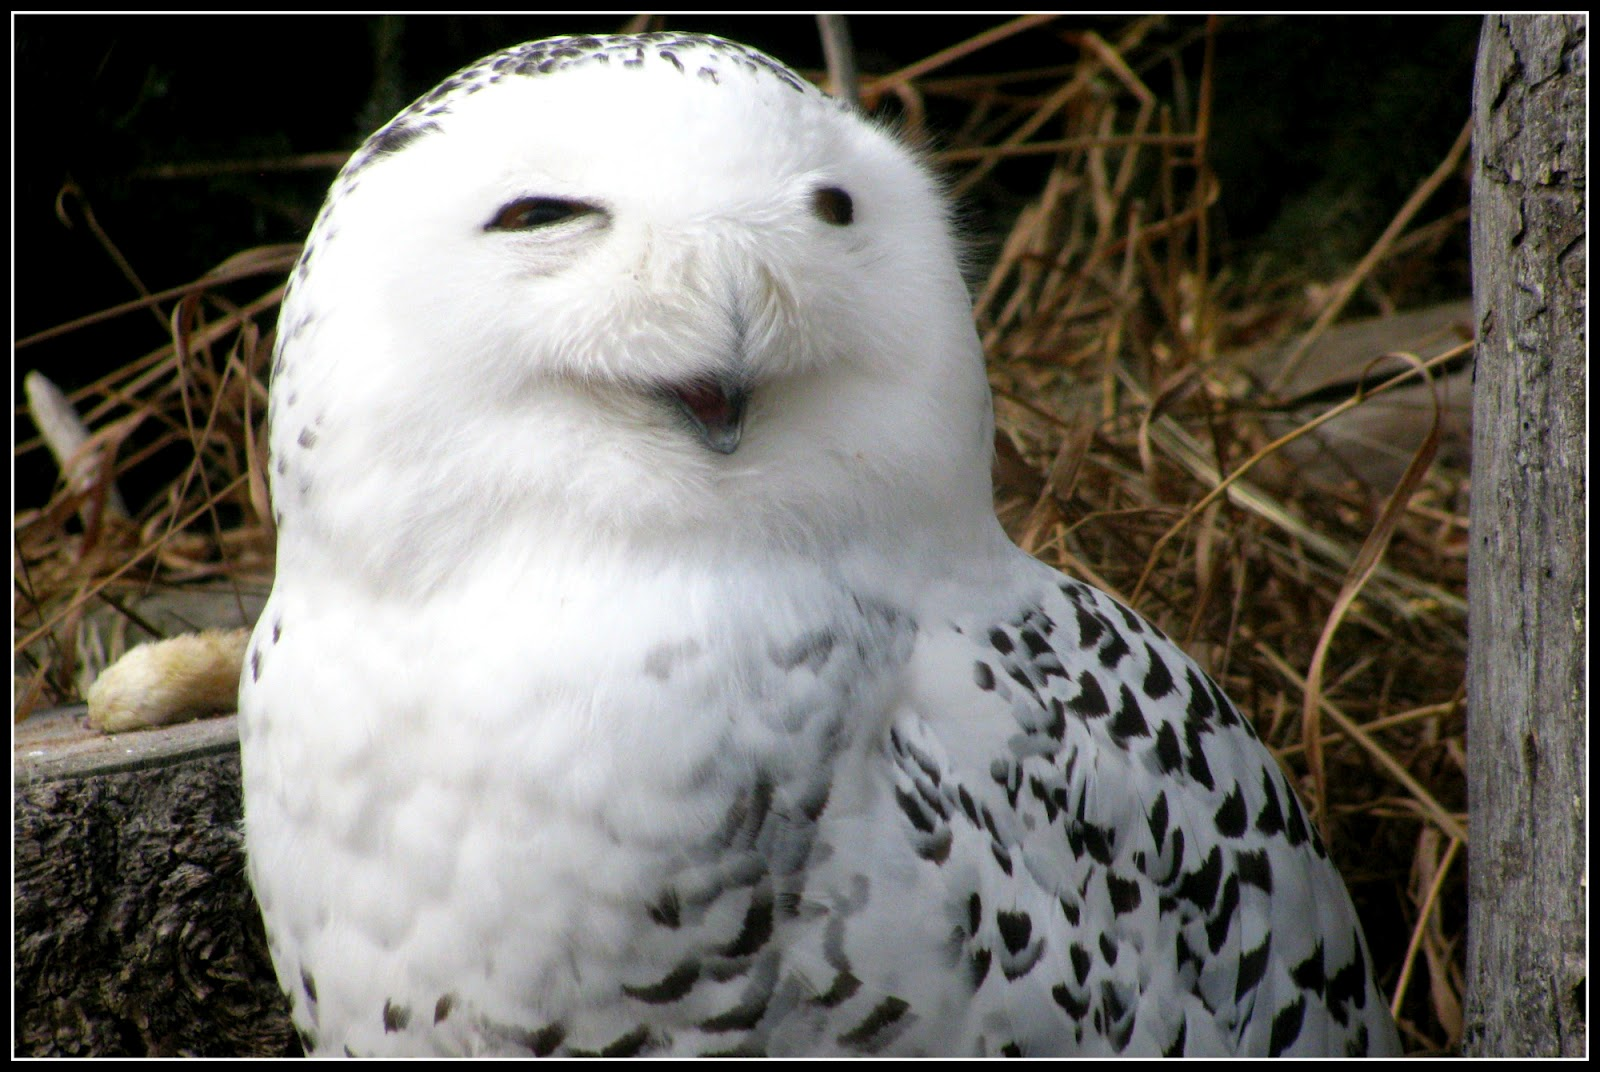 ... smiling animals smiling owl clipart smiling owl creepypasta smiling